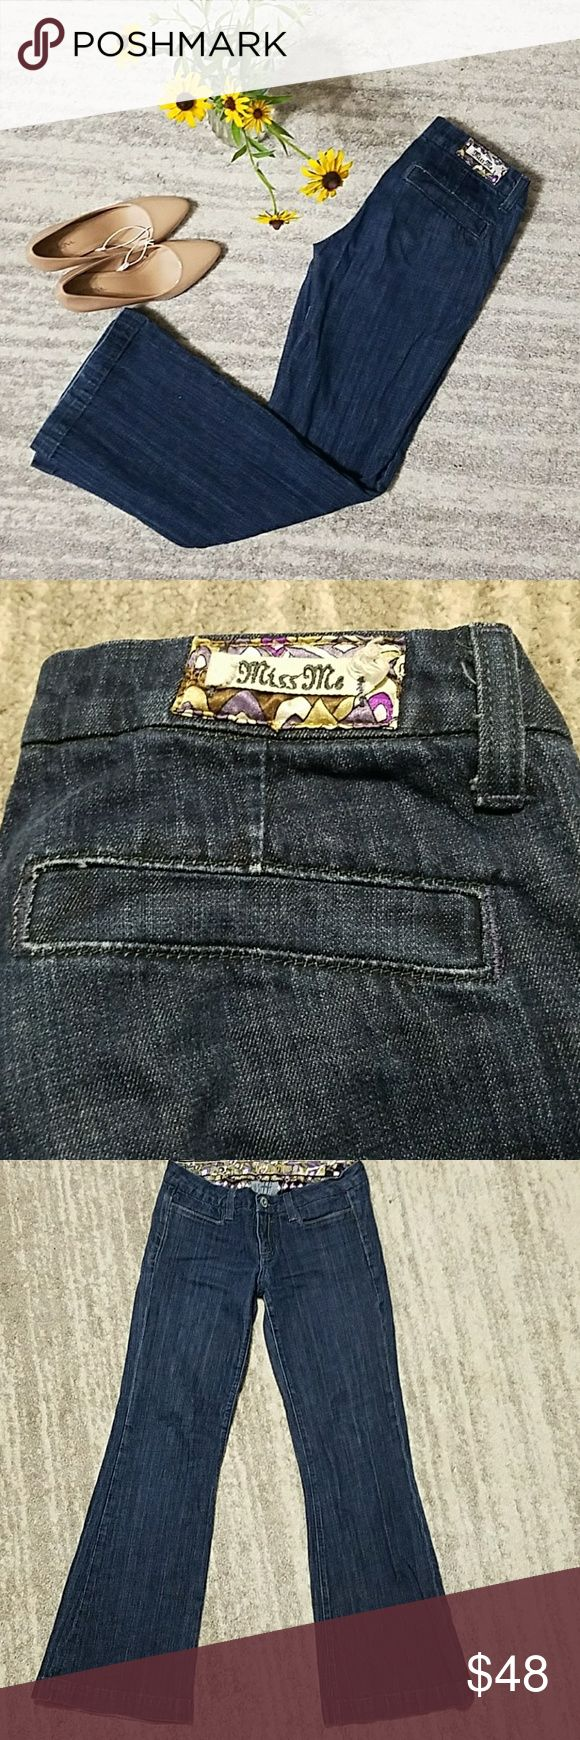 EUC Miss Me Dark Rinse Jeans Boot cut, dark rinse jeans. Perfect for work without the bold distracting pockets, but the same amazing quality of all other Miss Me jeans! Miss Me Jeans Boot Cut